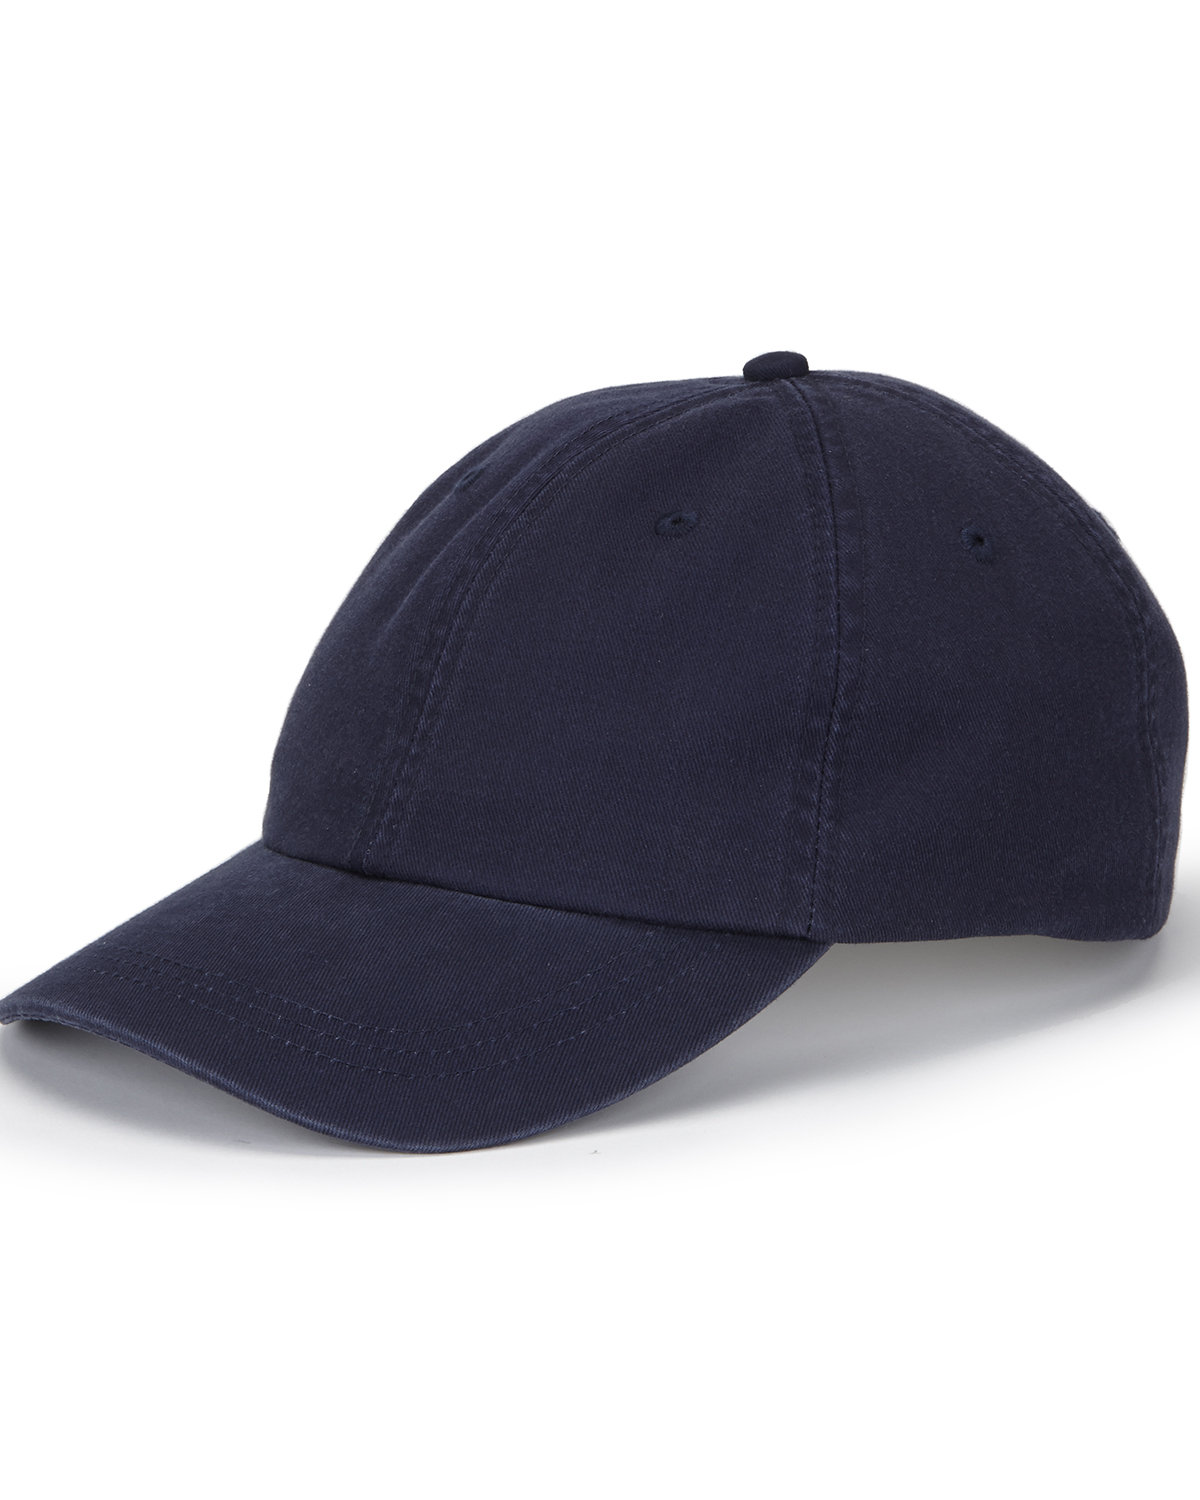 Hall of Fame Ultra Lightweight Twill Hat NAVY